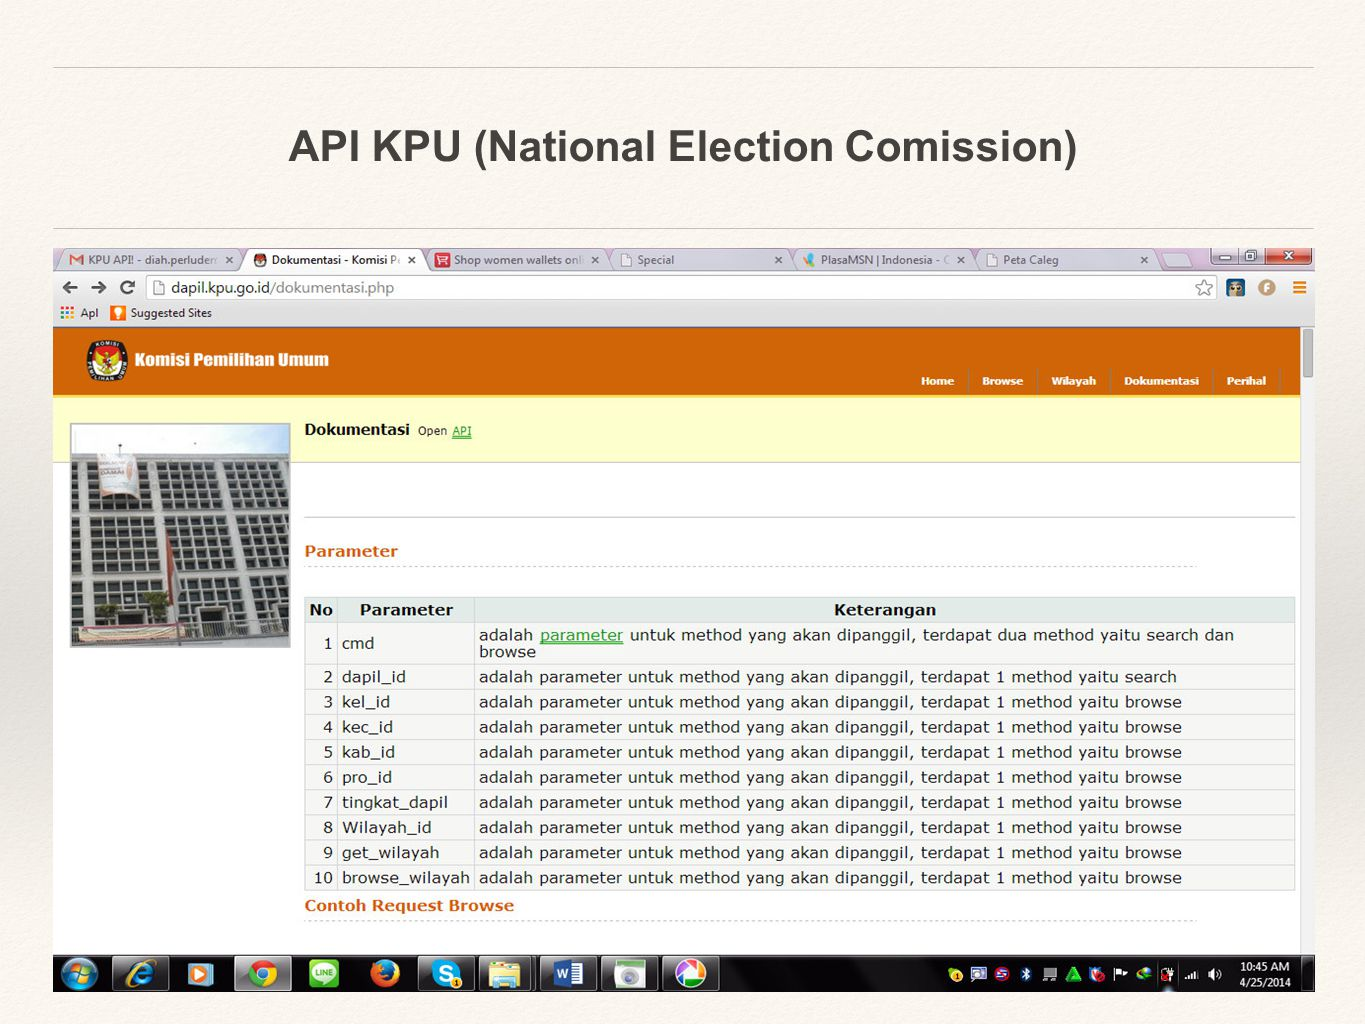 API KPU (National Election Comission) legislative voting records and bill information historically obtained this information from THOMAS which was the official legislative info site of the Library of Congress - now http://beta.congress.gov makes this info available to the public in a structured format via several APIs GovTrack.u s